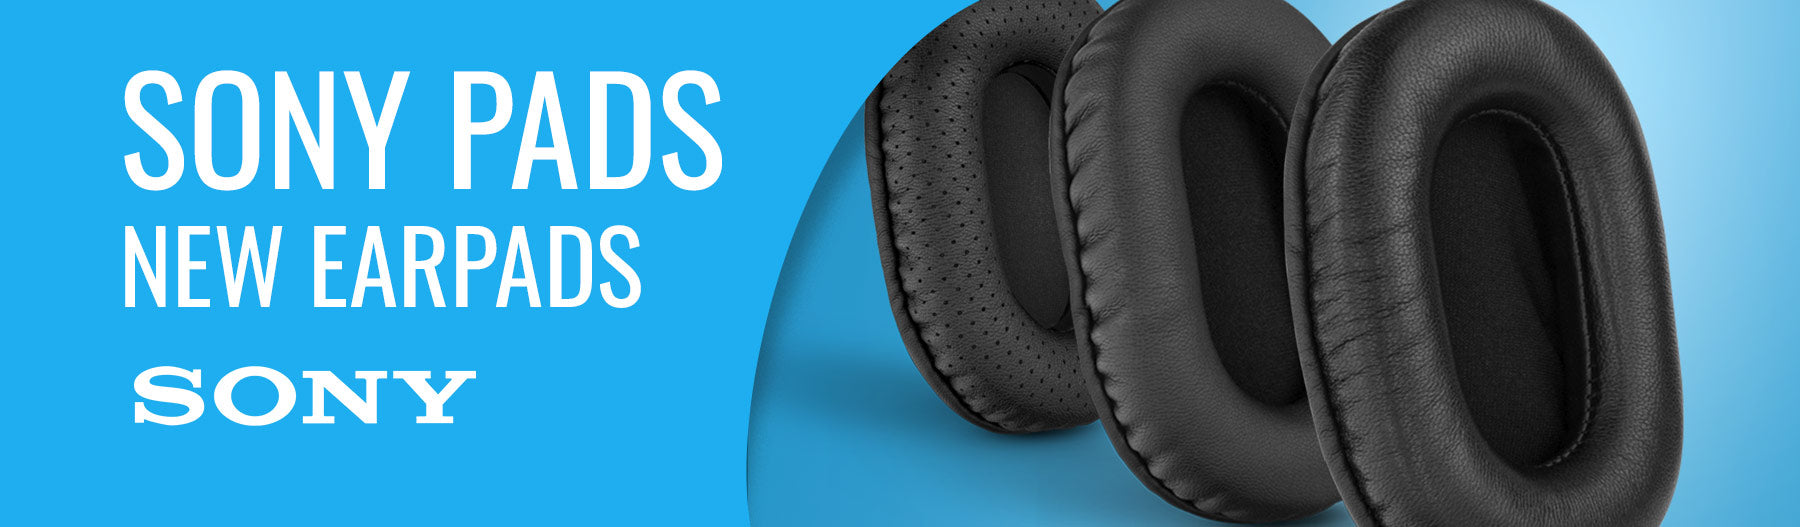 New SONY replacement earpads from Brainwavz